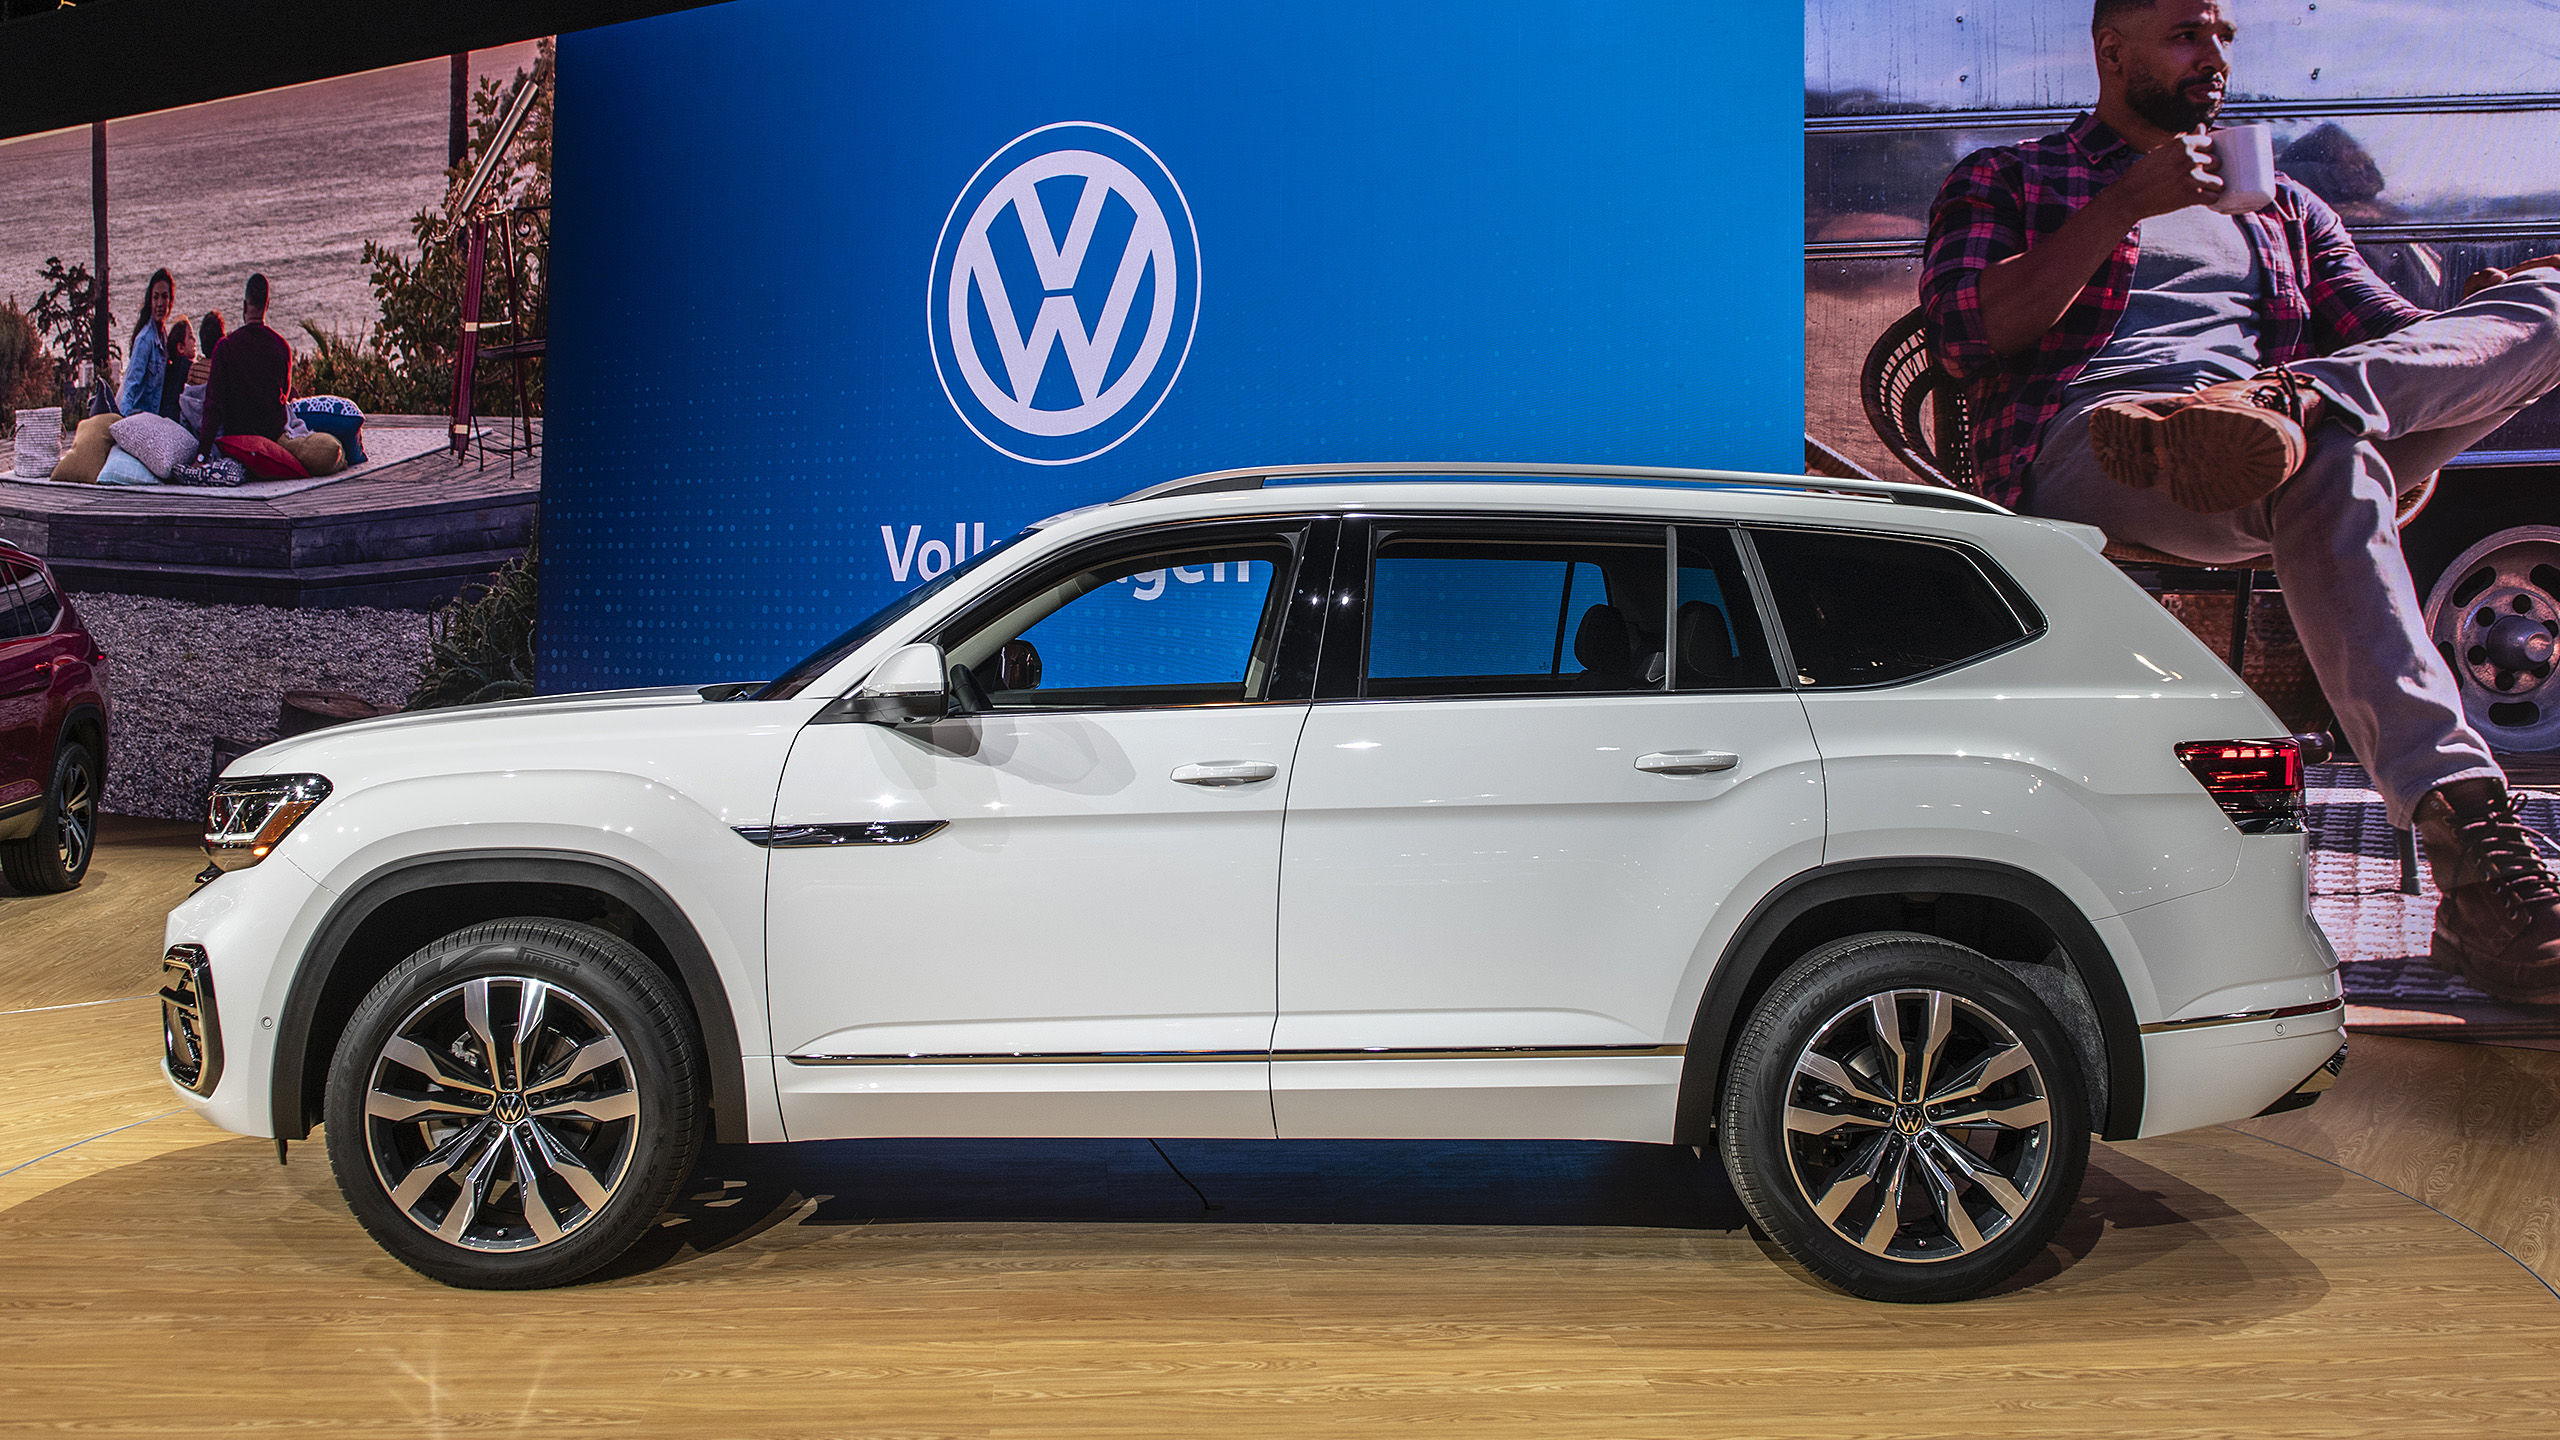 Gas Prices In Chicago >> 2021 Volkswagen Atlas unveiled at Chicago auto show with new design | Autoblog